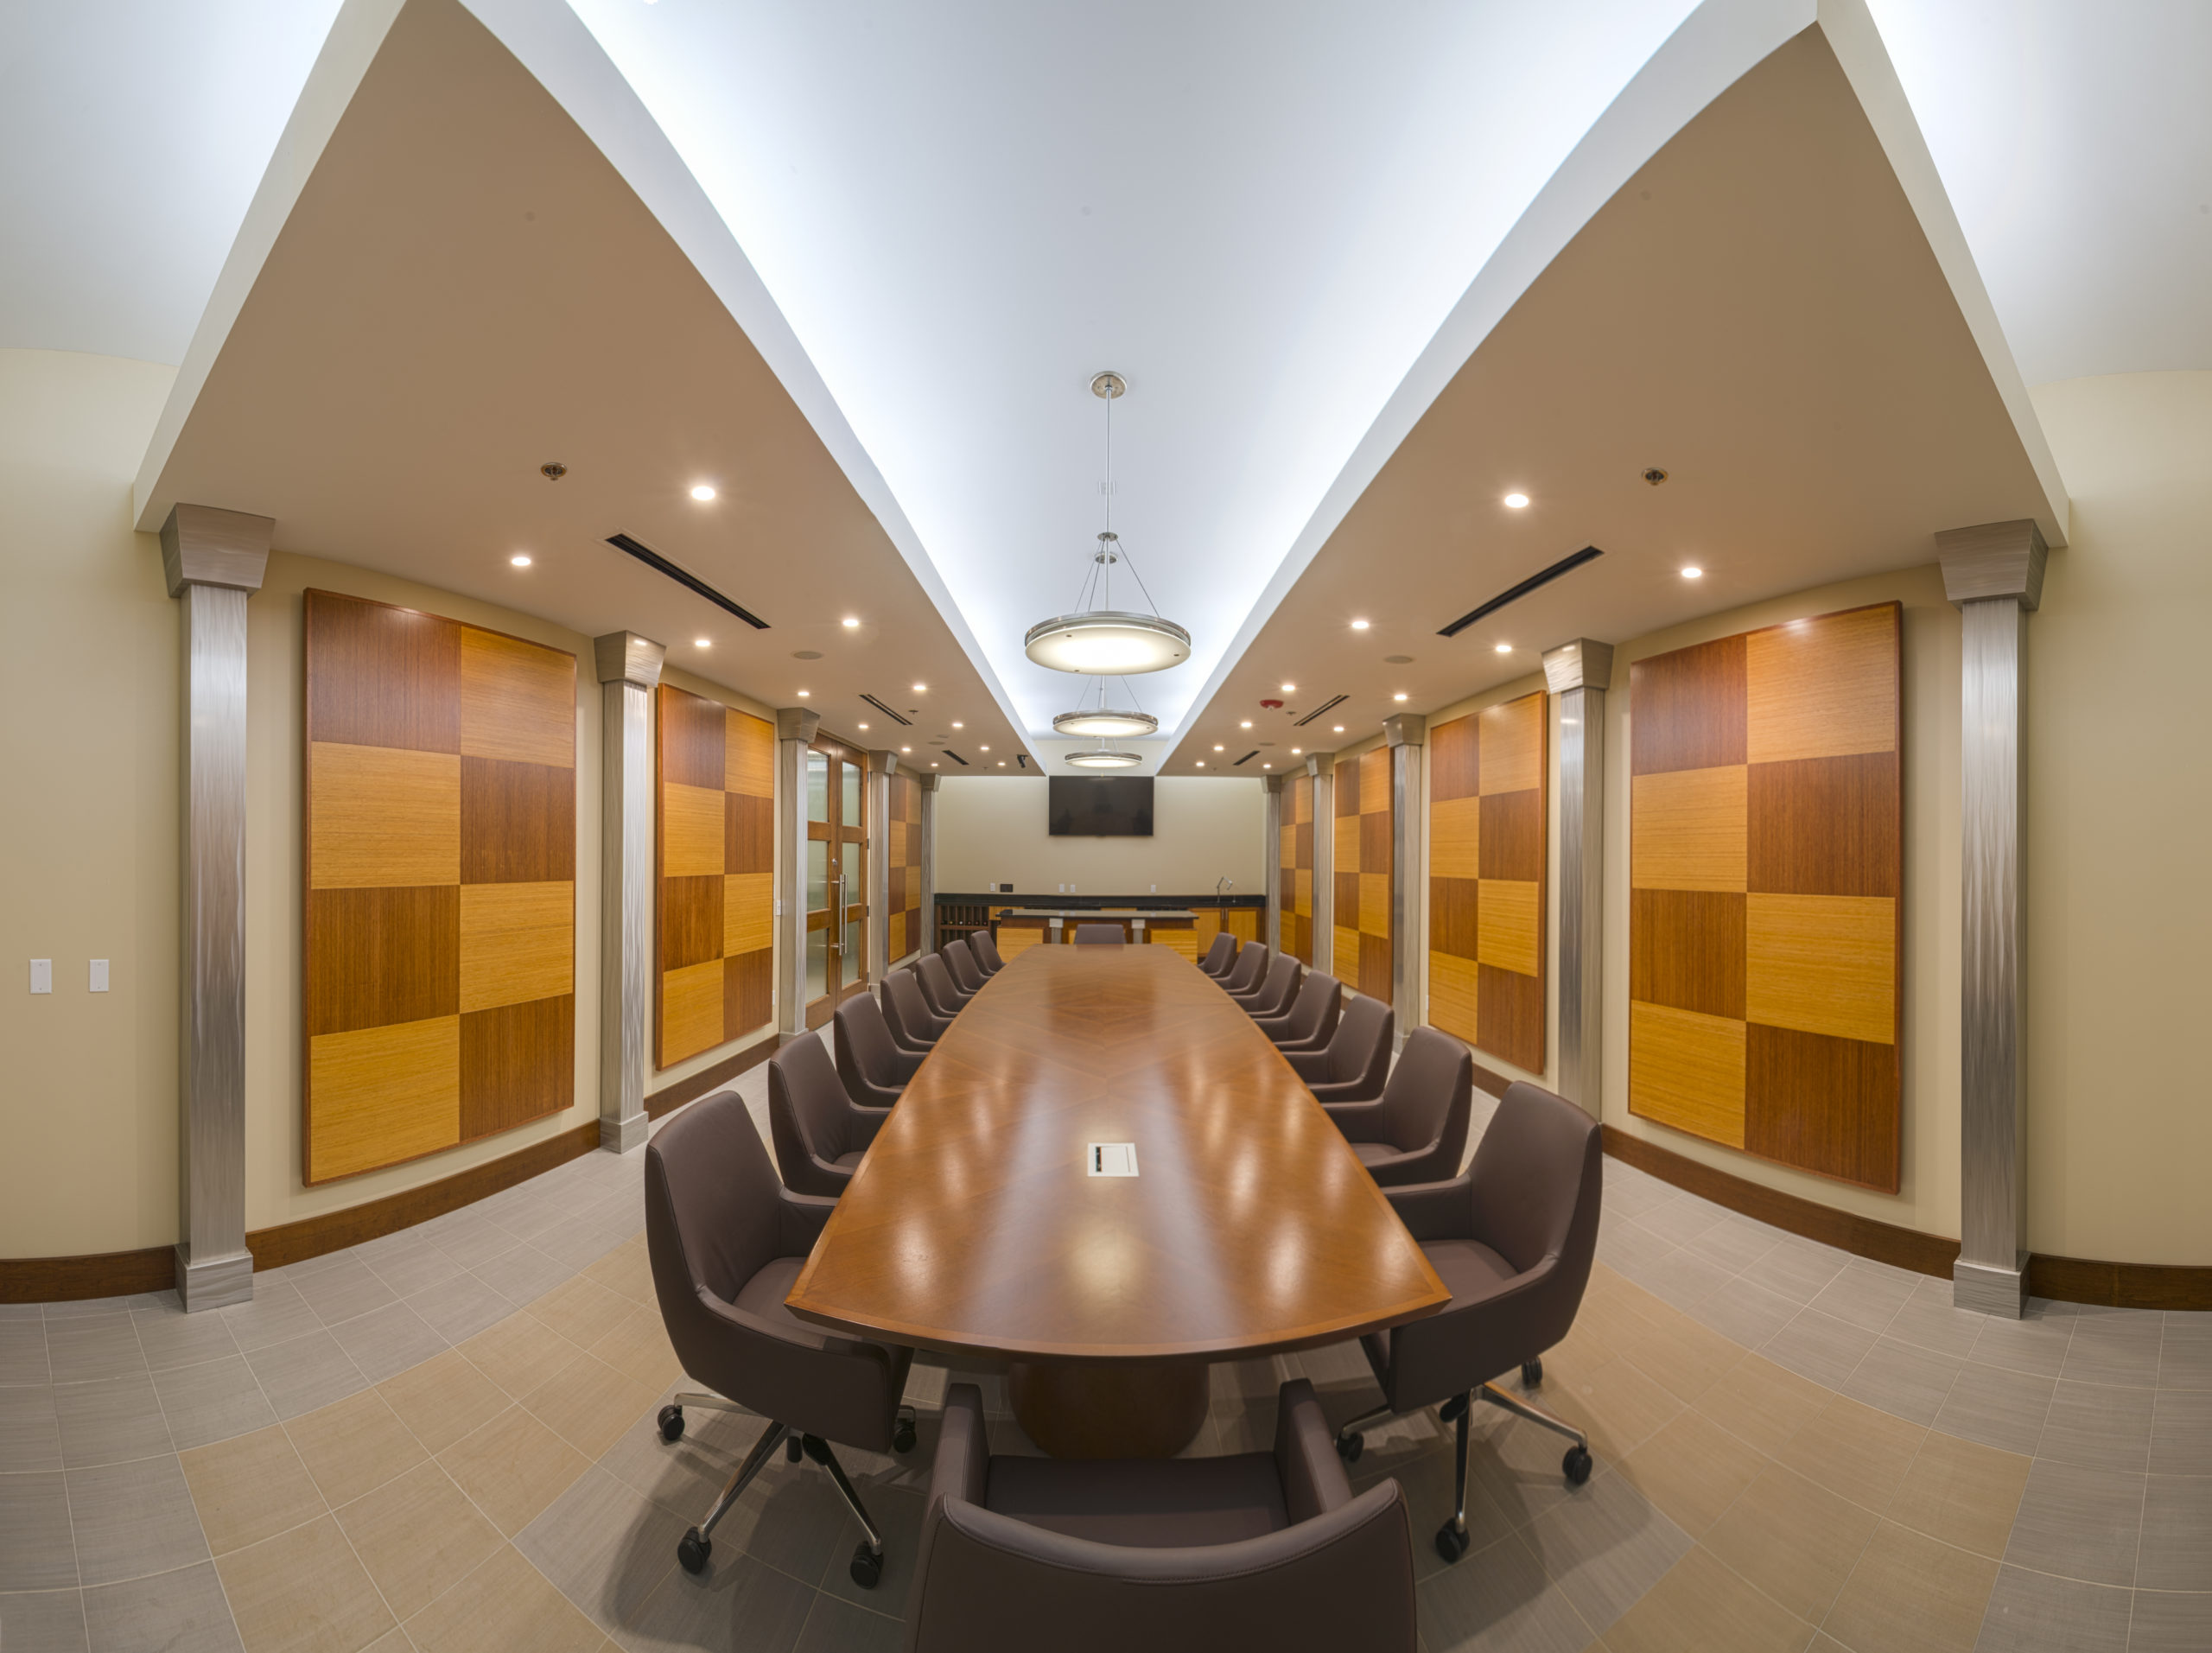 Office conference room interior.